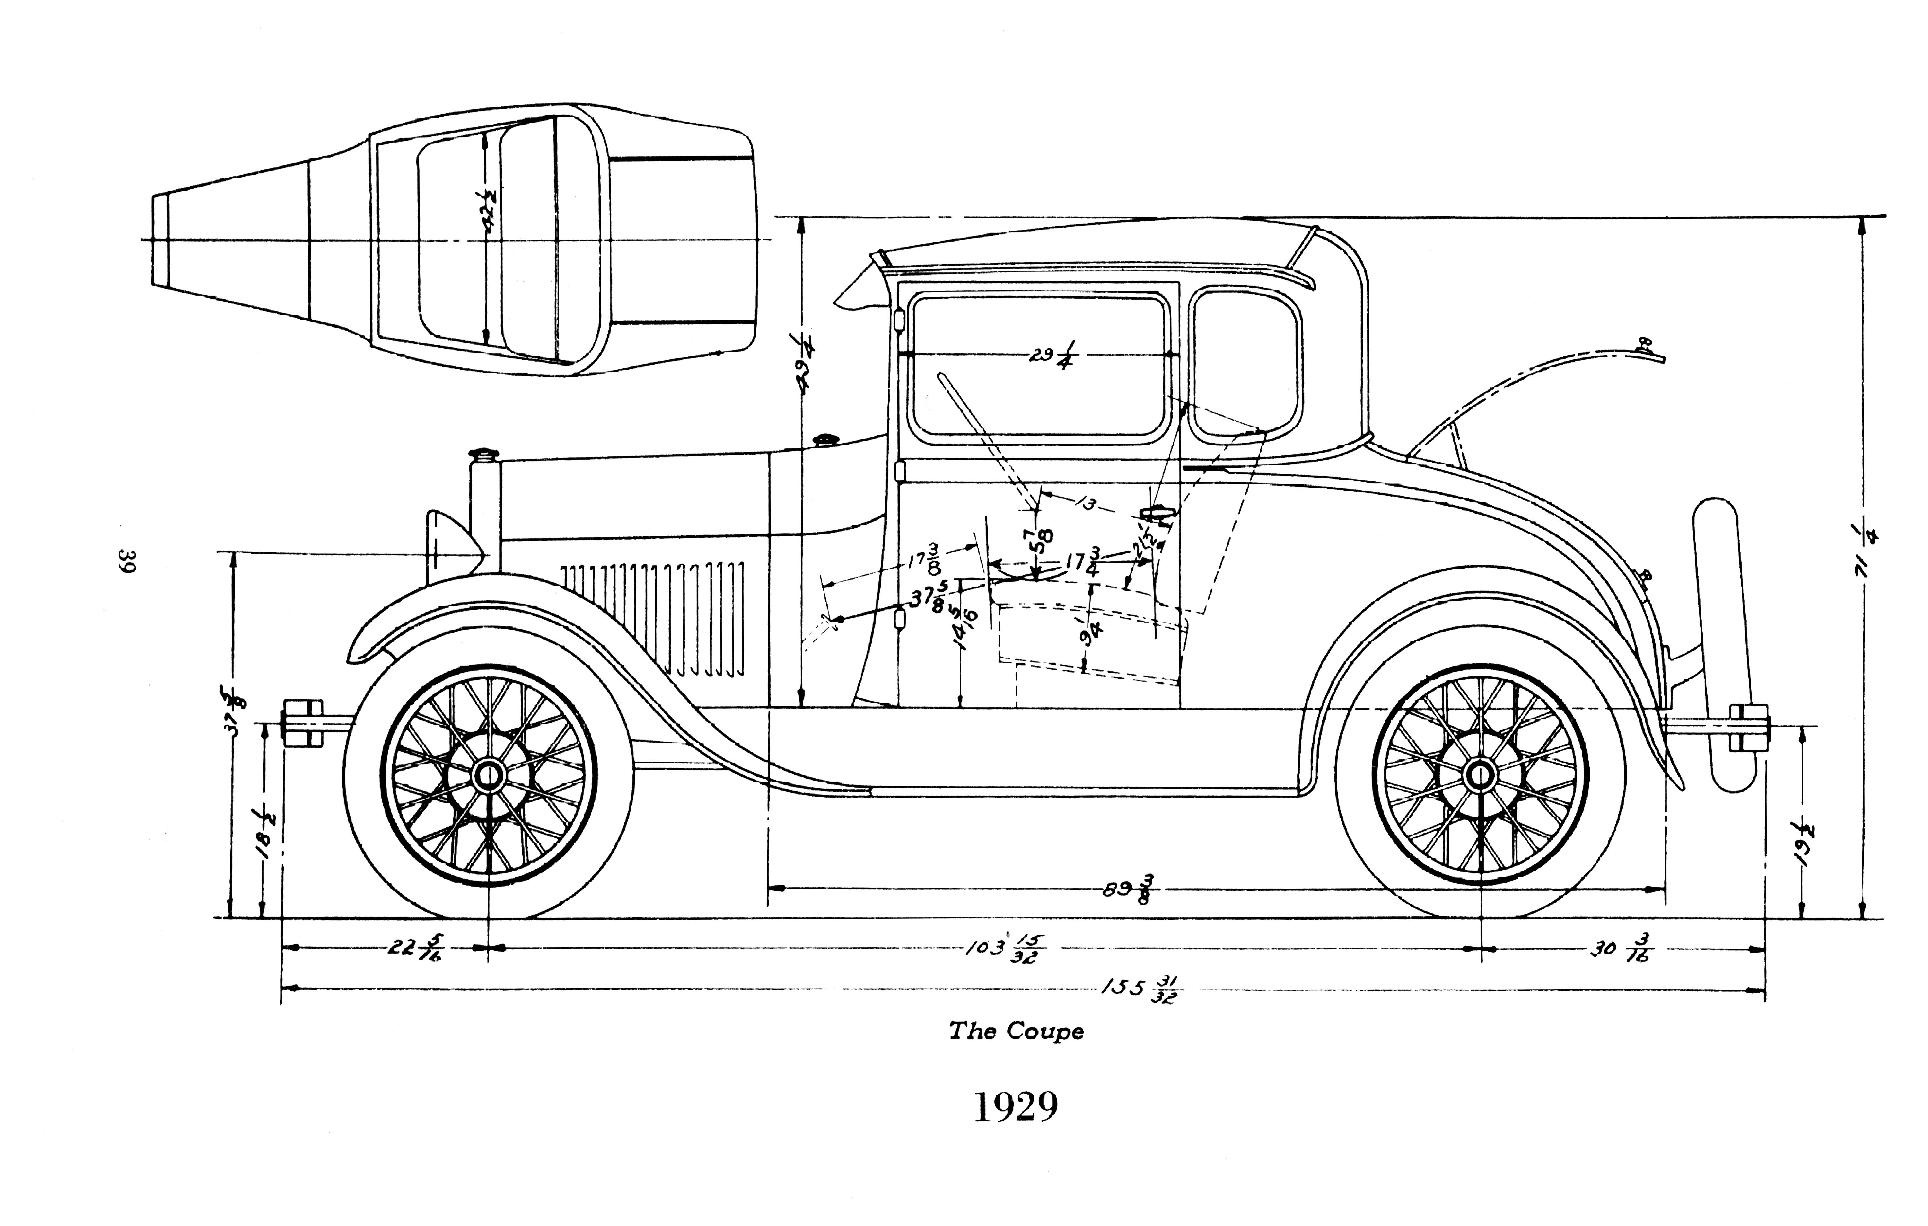 354165958186455069 also Mercedes Benz 170v Pickup W136 in addition Blueprints moreover 380765258762 likewise Viewtopic. on 1930 ford model a truck cab